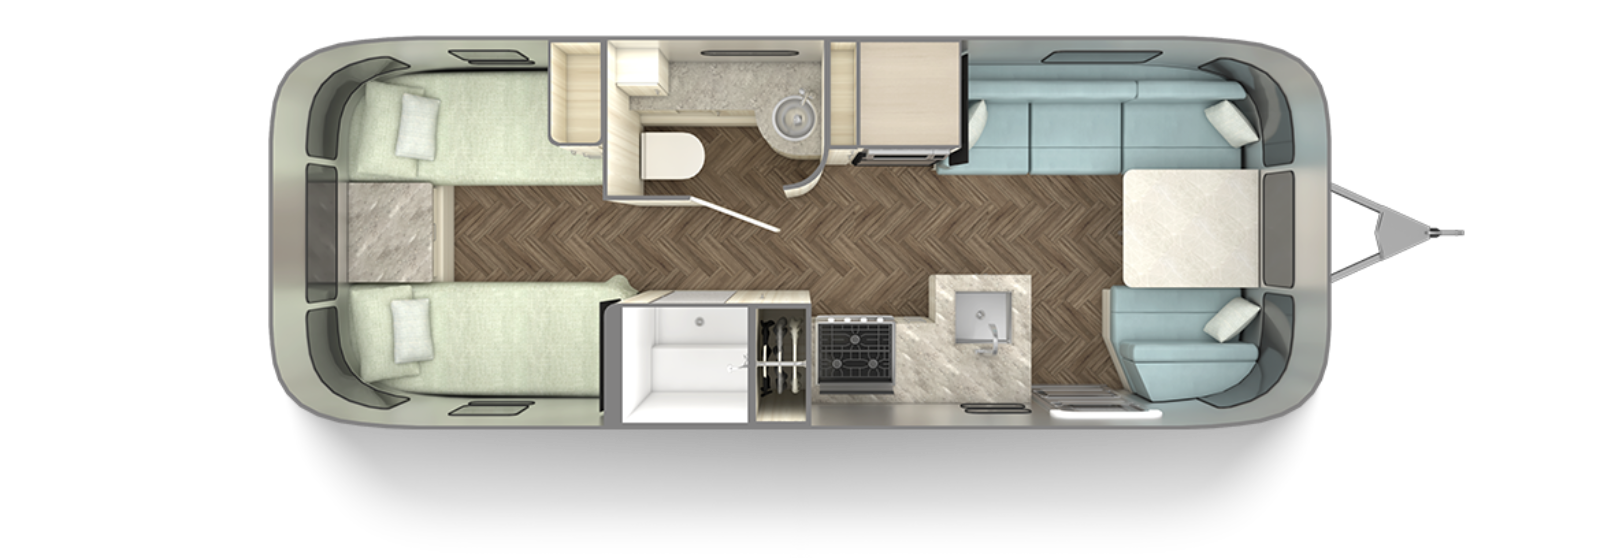 2021-Airstream-International-25RB-floor-plan-twin-aqua